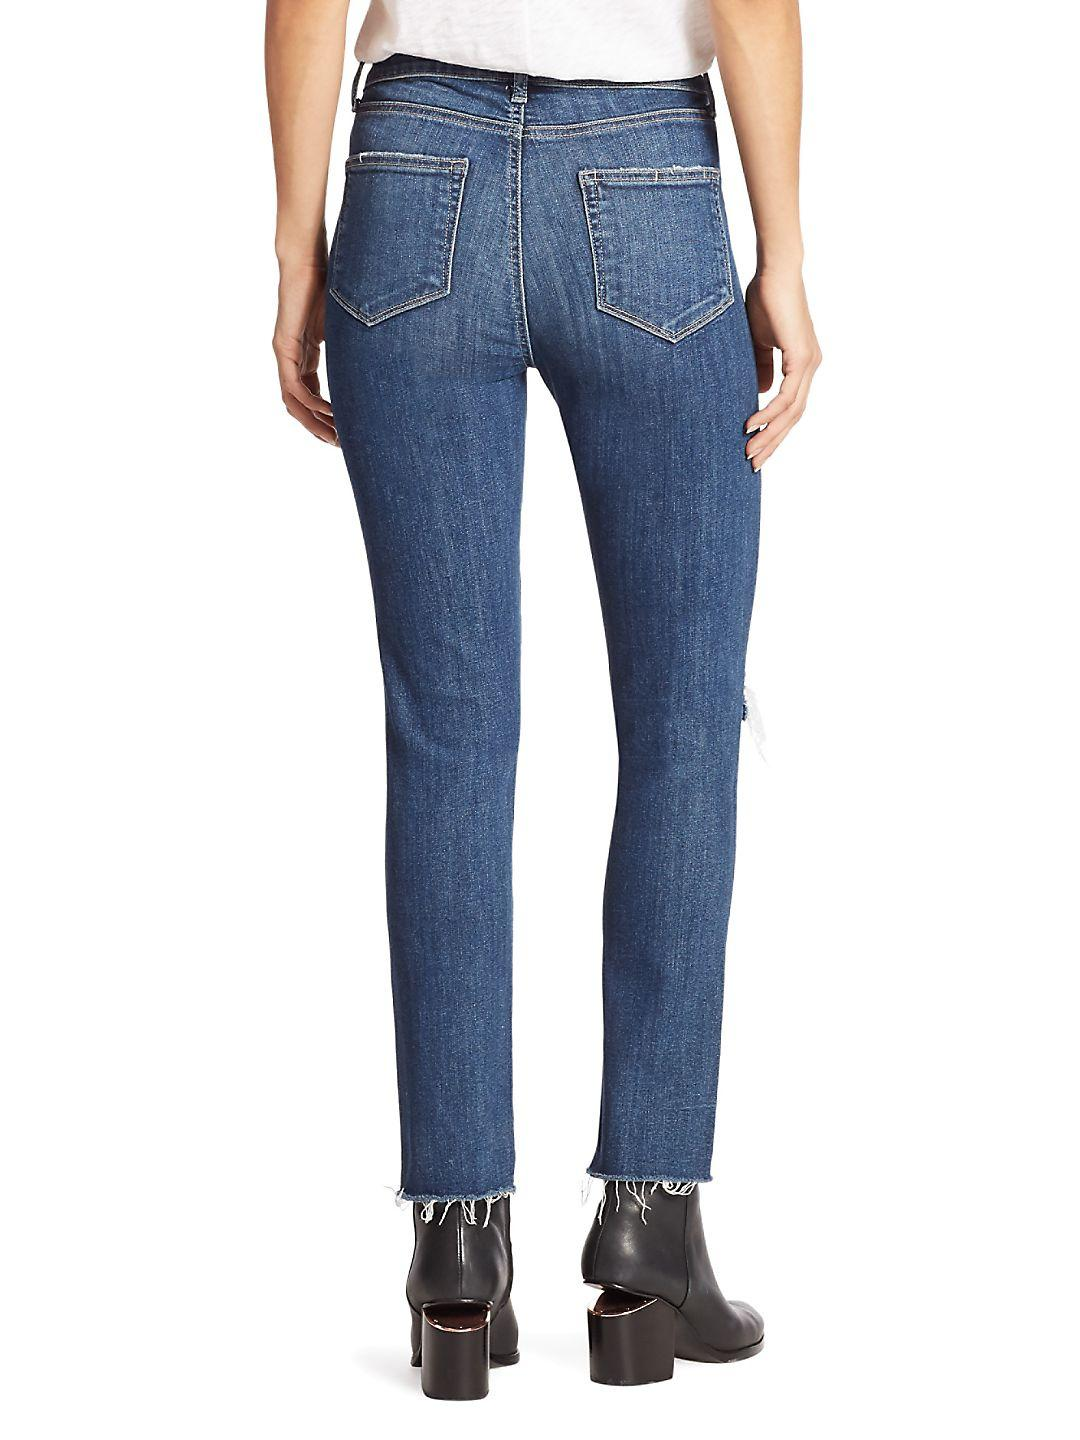 PAIGE Denim Hoxton High-rise Distressed Step Hem Ankle Jeans in Blue